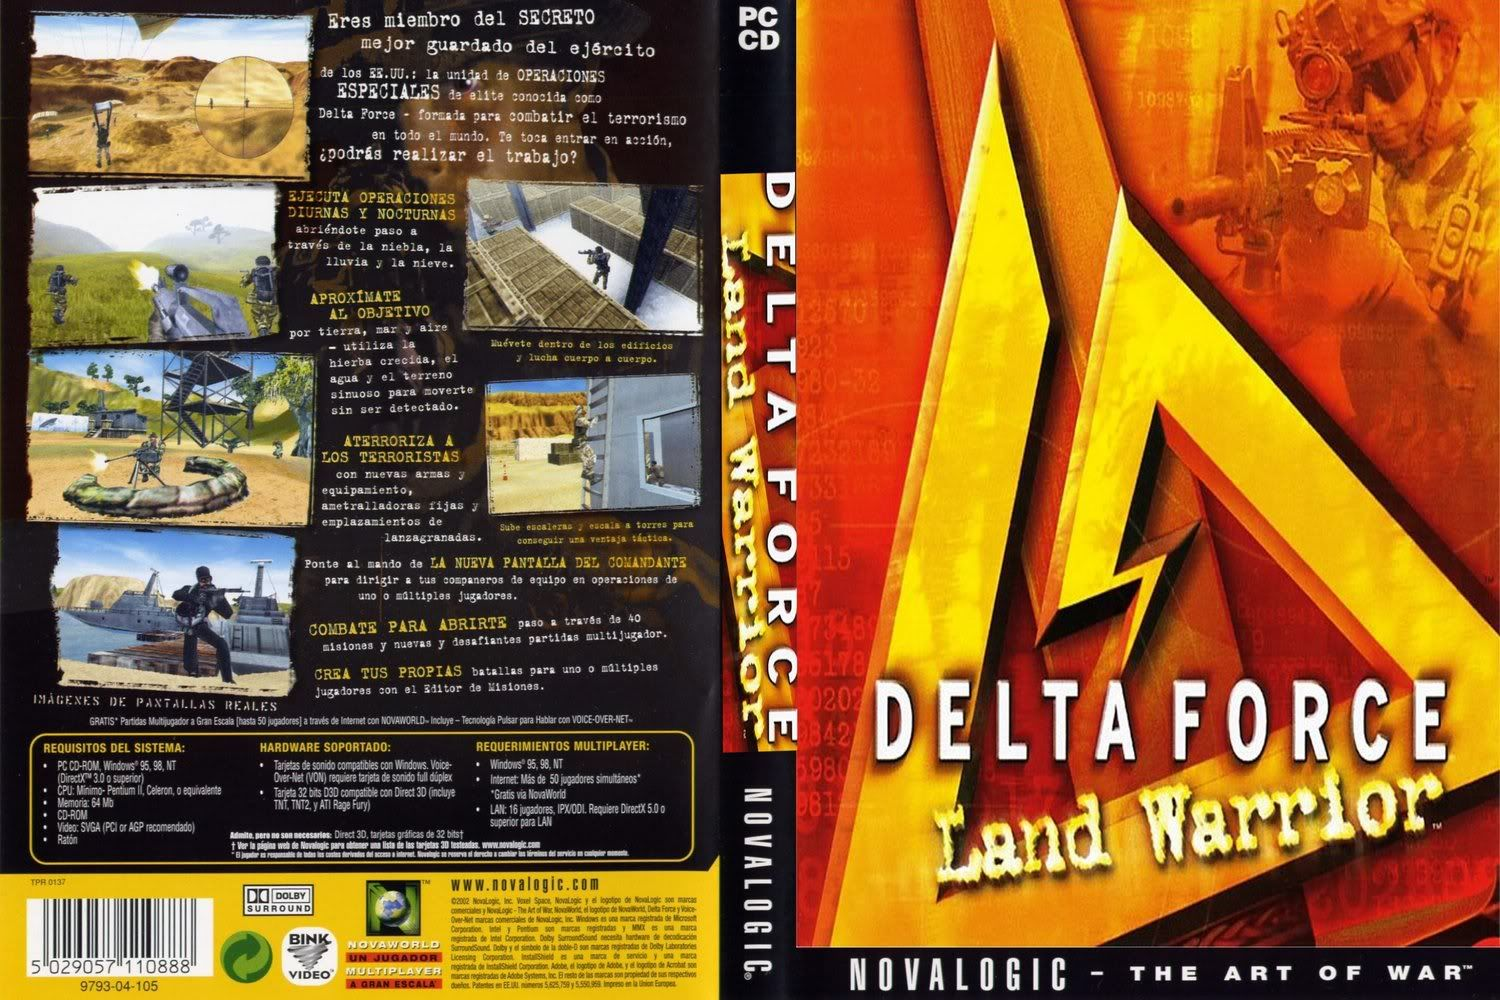 Delta Force 3 Land Warrior Pc Game Free Download Full